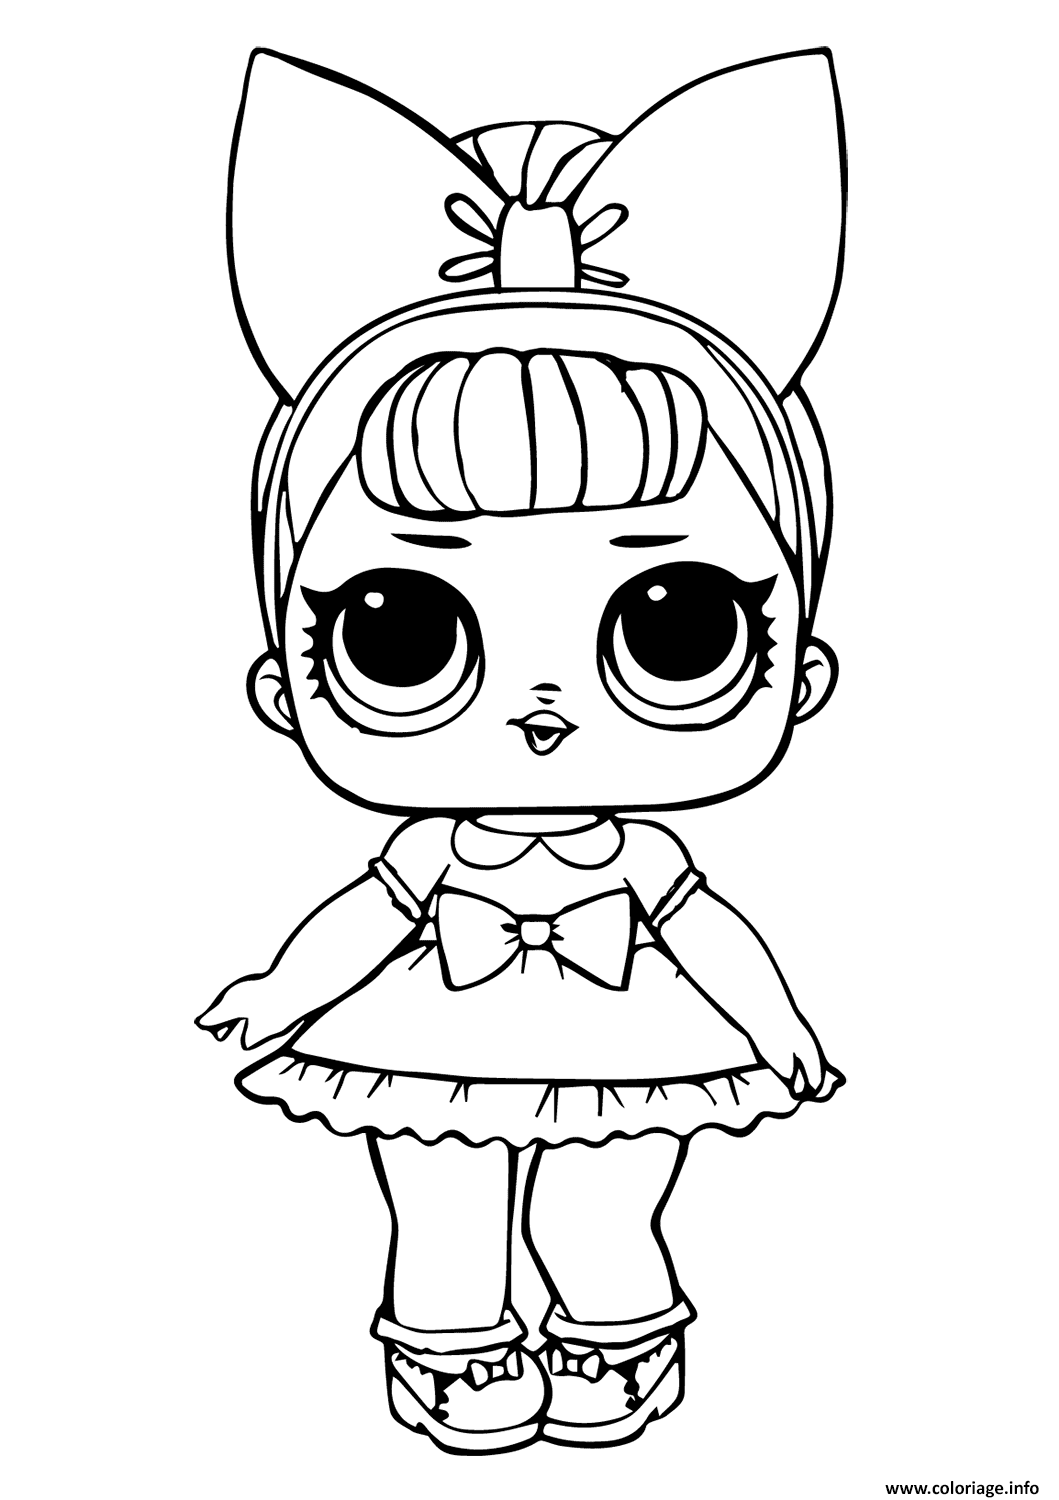 Coloriage Lol Doll Fancy Glitter Dessin à Imprimer